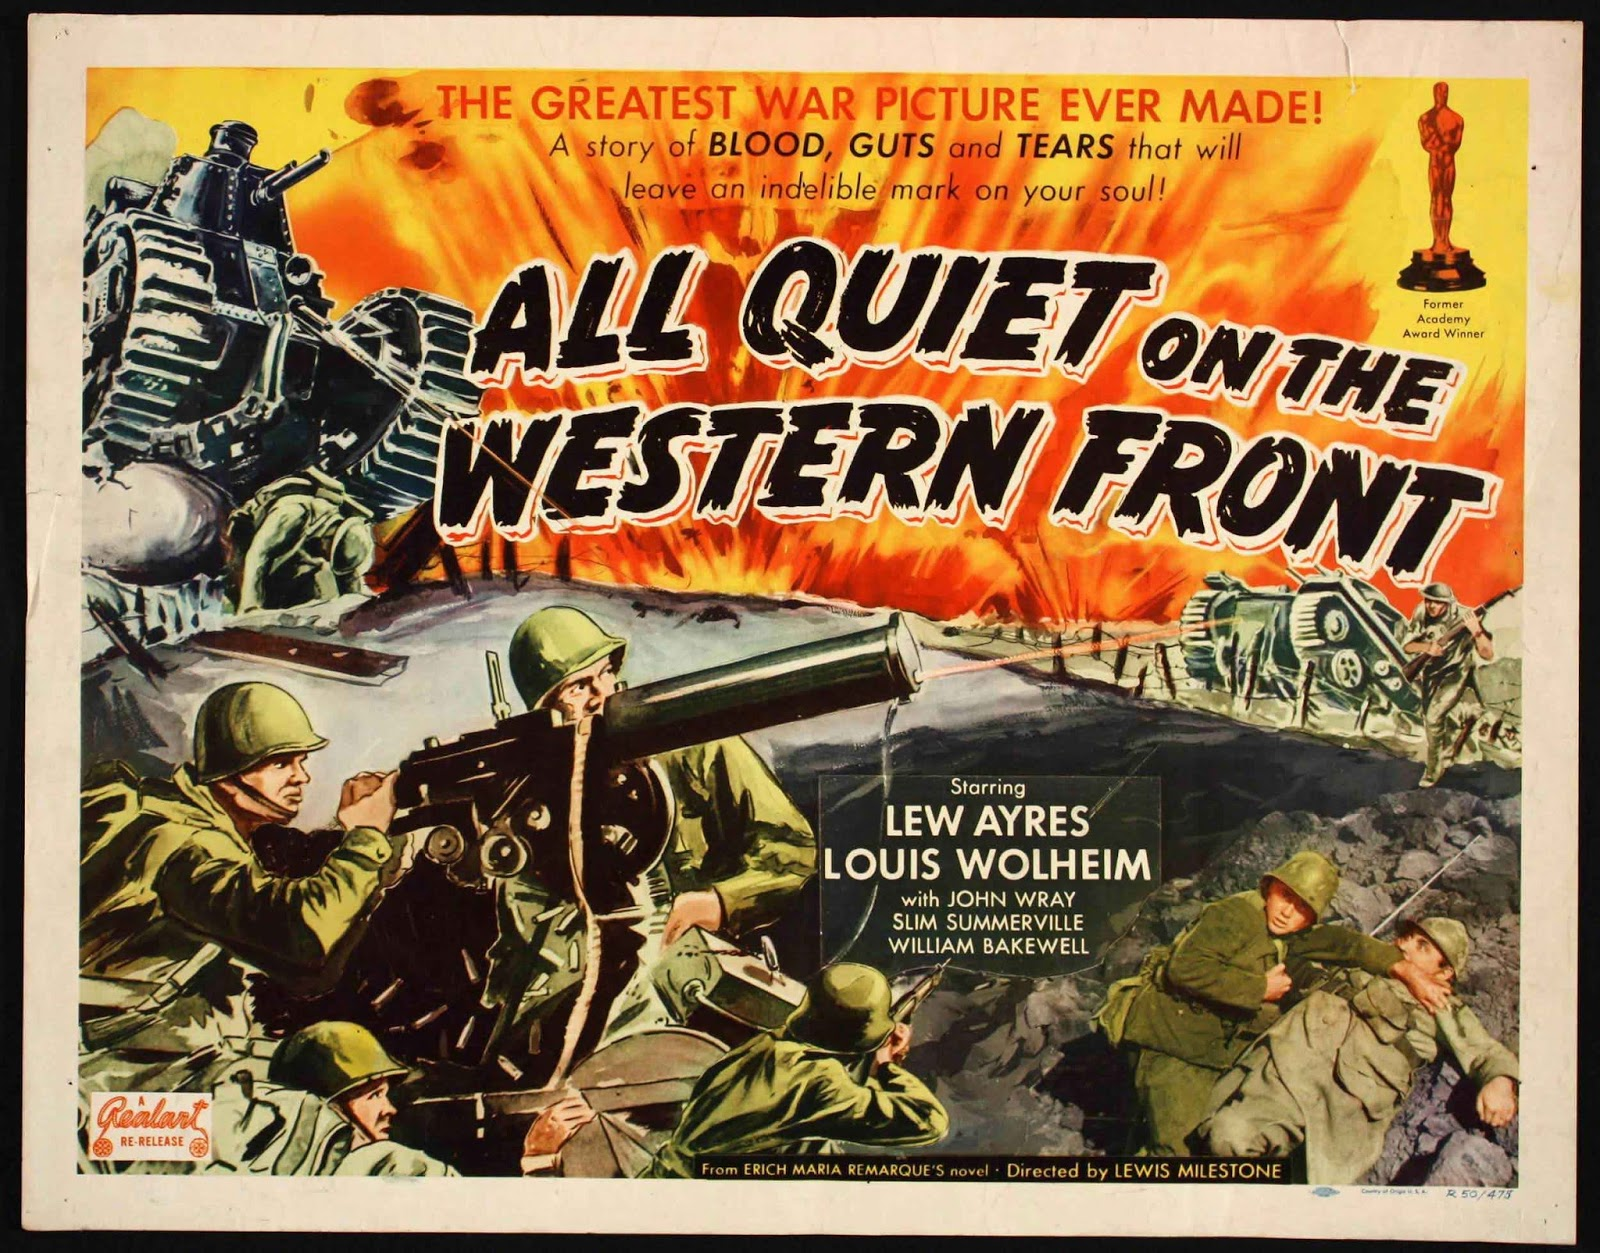 the themes of pain and suffering in all quiet on the western front by remarque From plot debriefs to key motifs, thug notes' all quiet on the western front summary & analysis has you covered with themes, symbols, and important quotes.